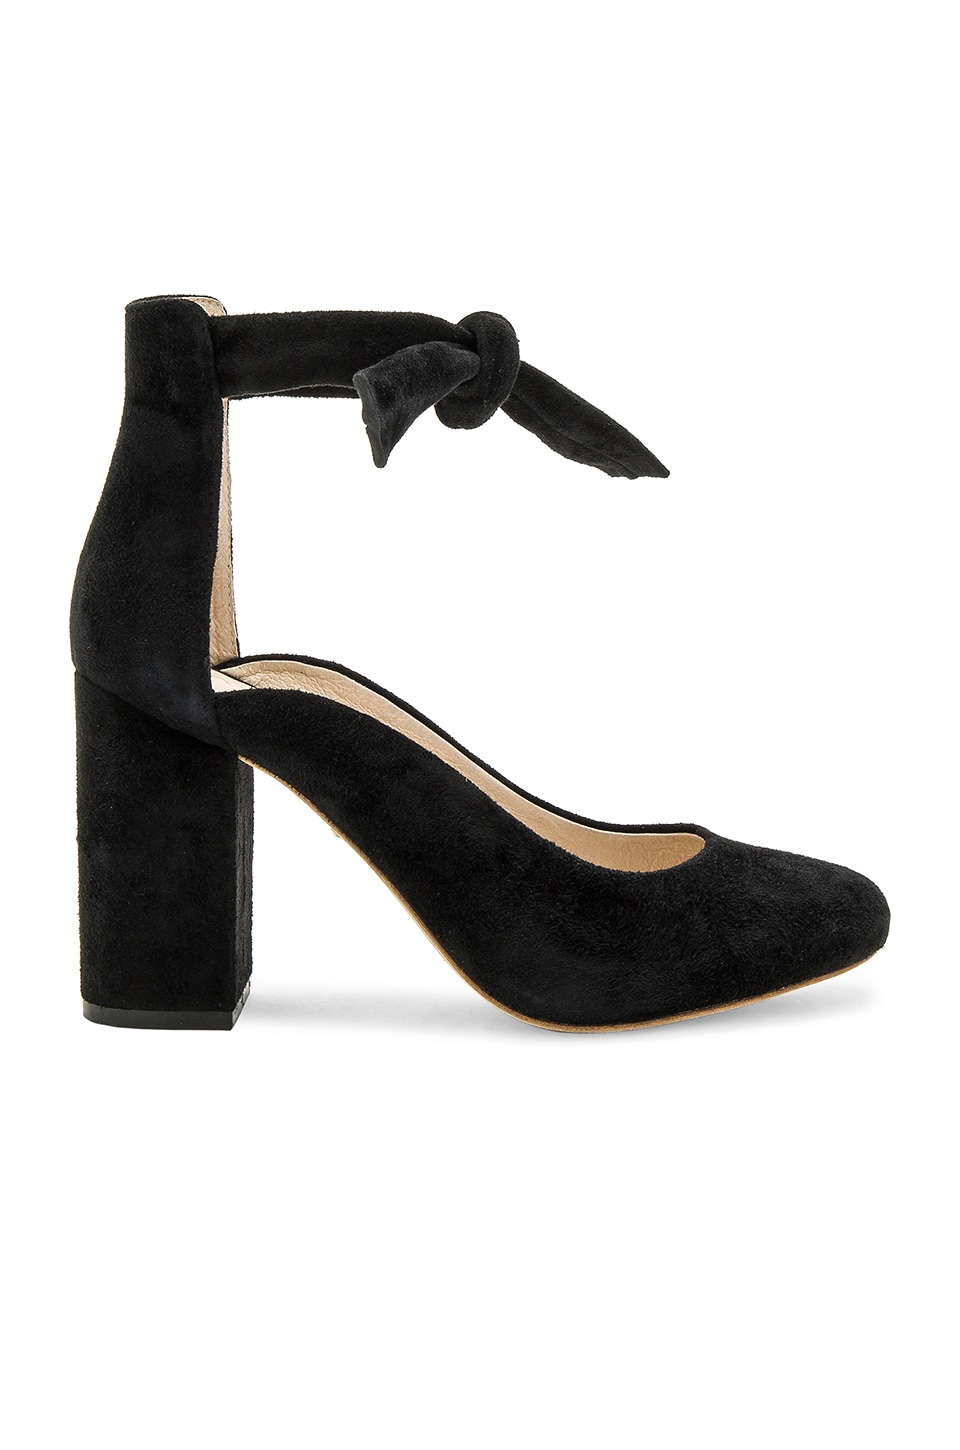 RAYE Hettie Pump in Black